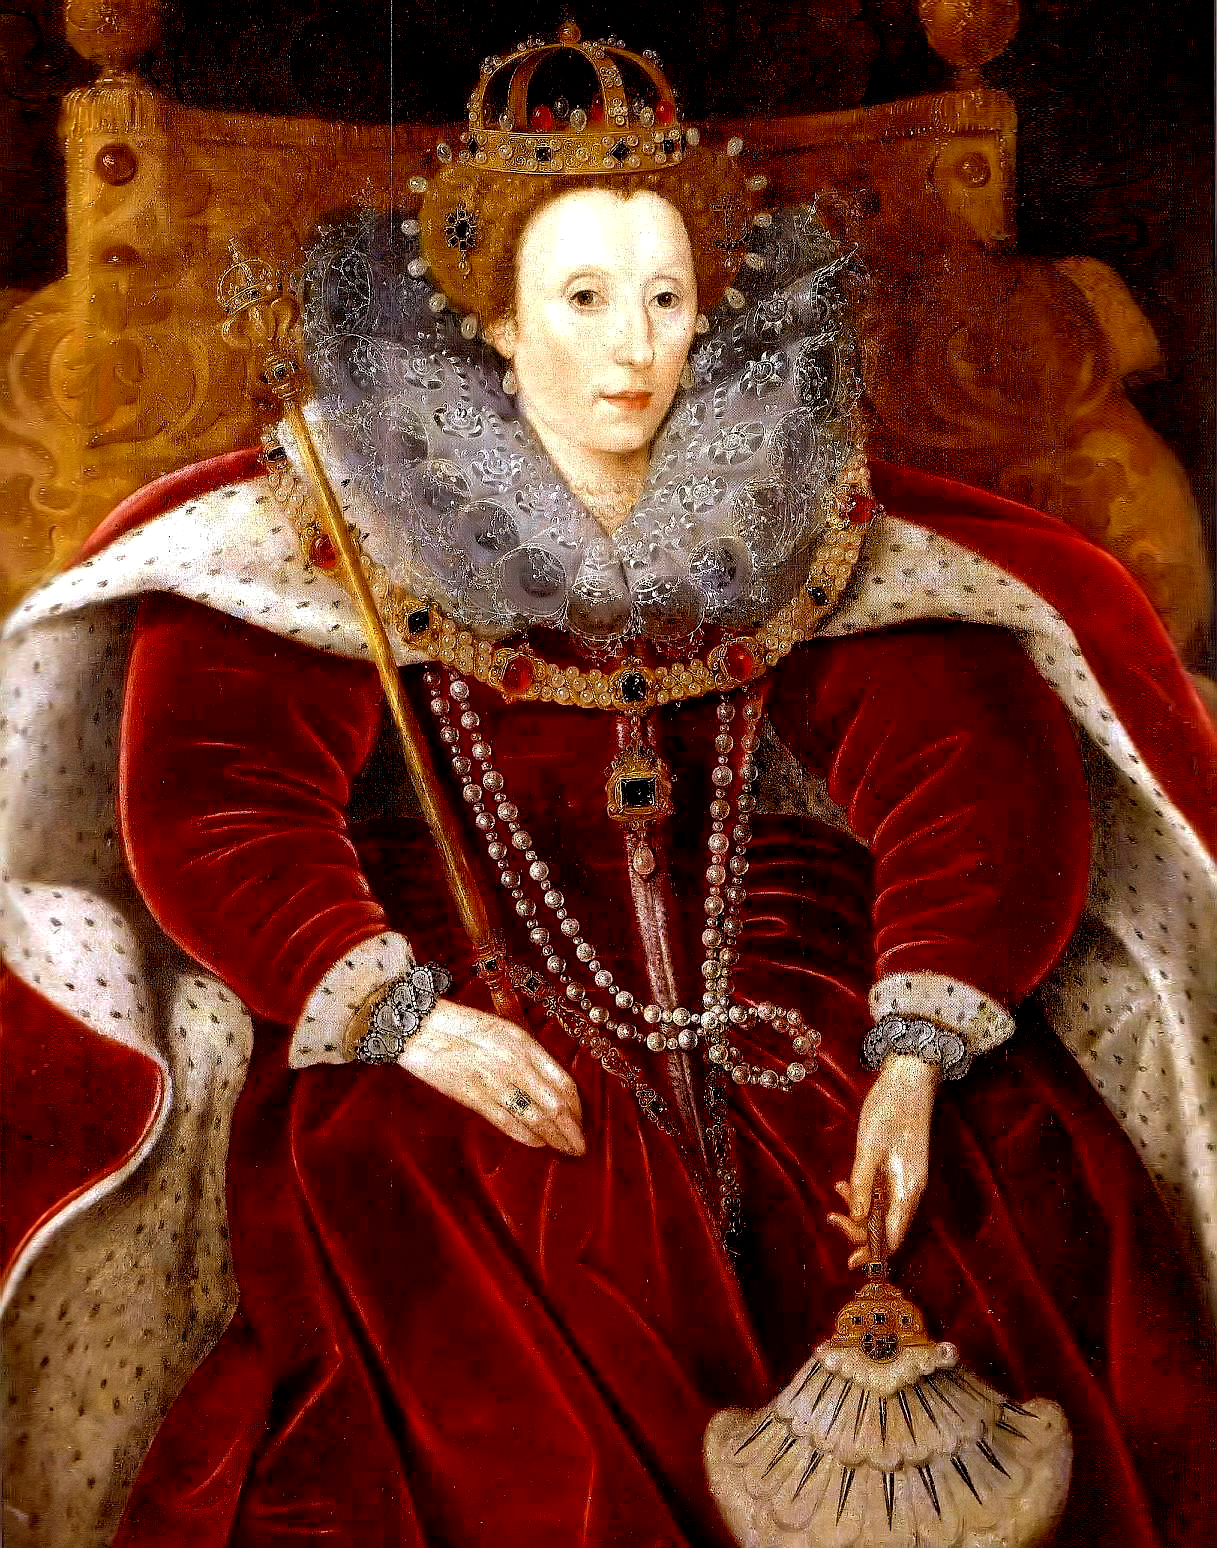 queen elizabeth i monarch of the ages english literature essay The literature of this age is often called the literature of the renaissance the elizabethan age is the golden age of english drama it was now that plays came to be divided into five acts the age of elizabeth was a time of intellectual liberty, of growing intelligence and comfort among all classes, of.